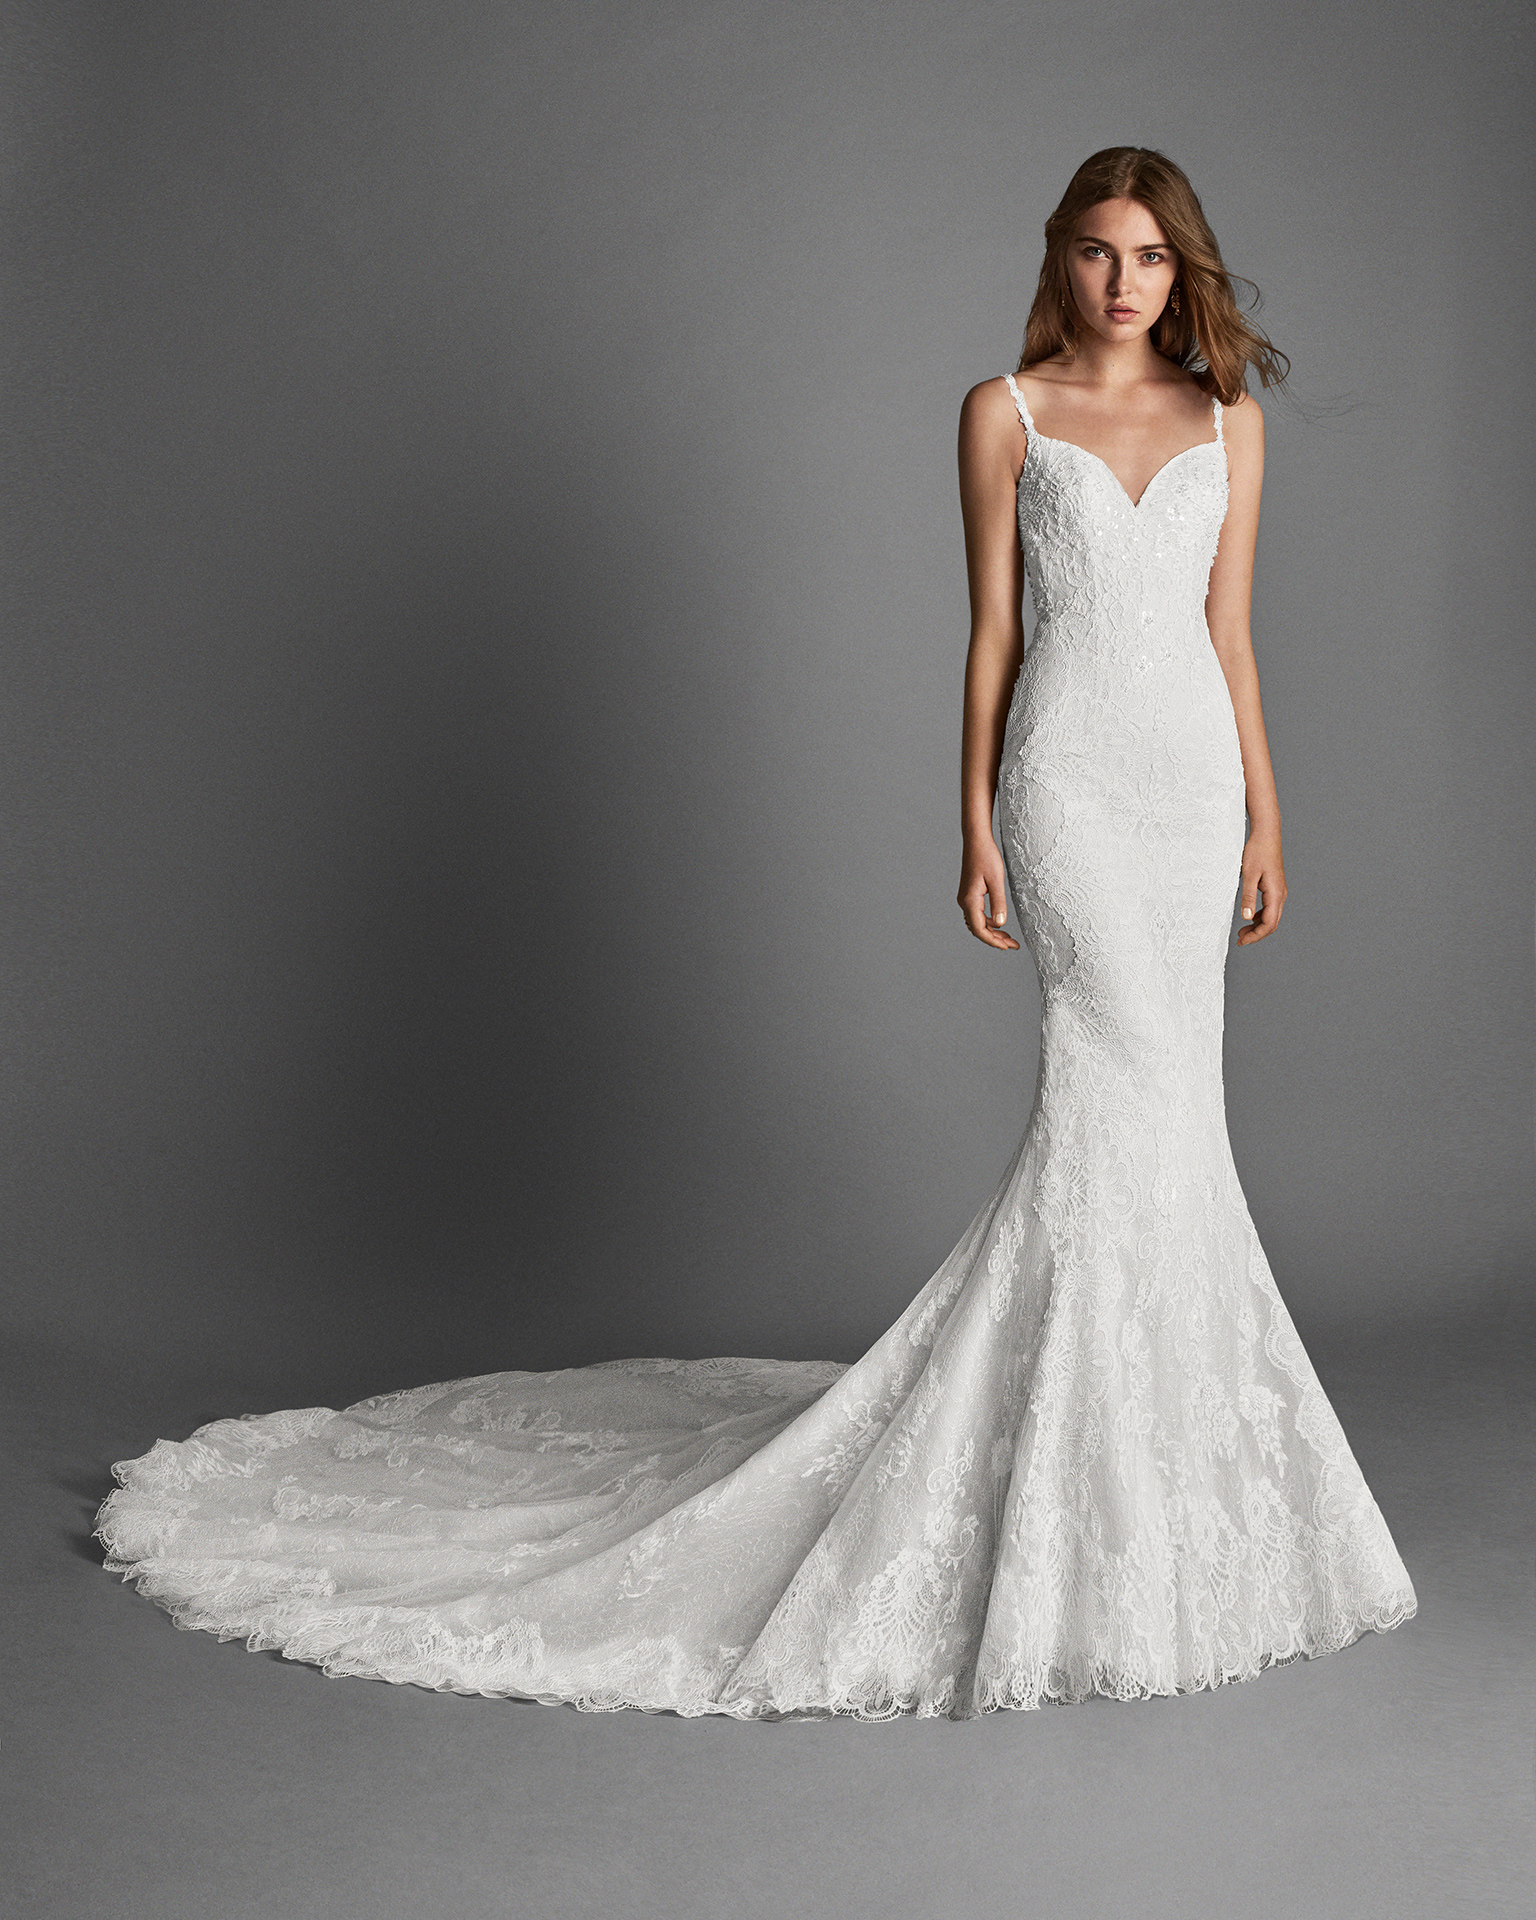 Mermaid-style beaded lace wedding dress with low back.